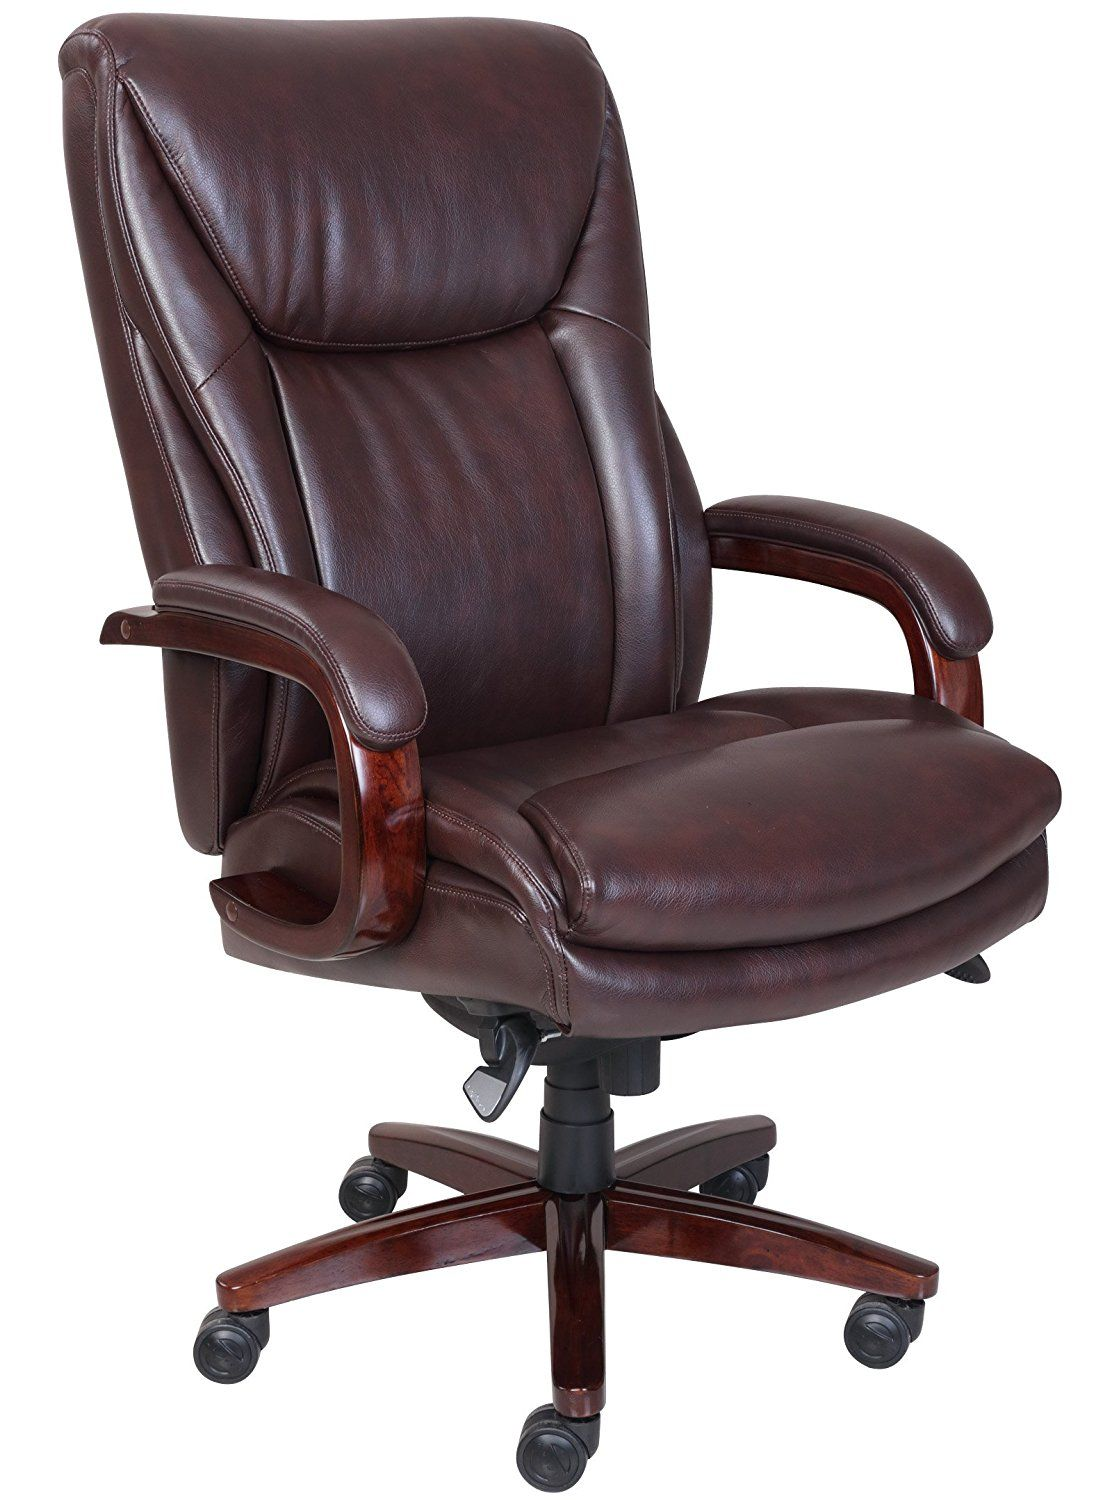 Executive Leather Office Chair Mit